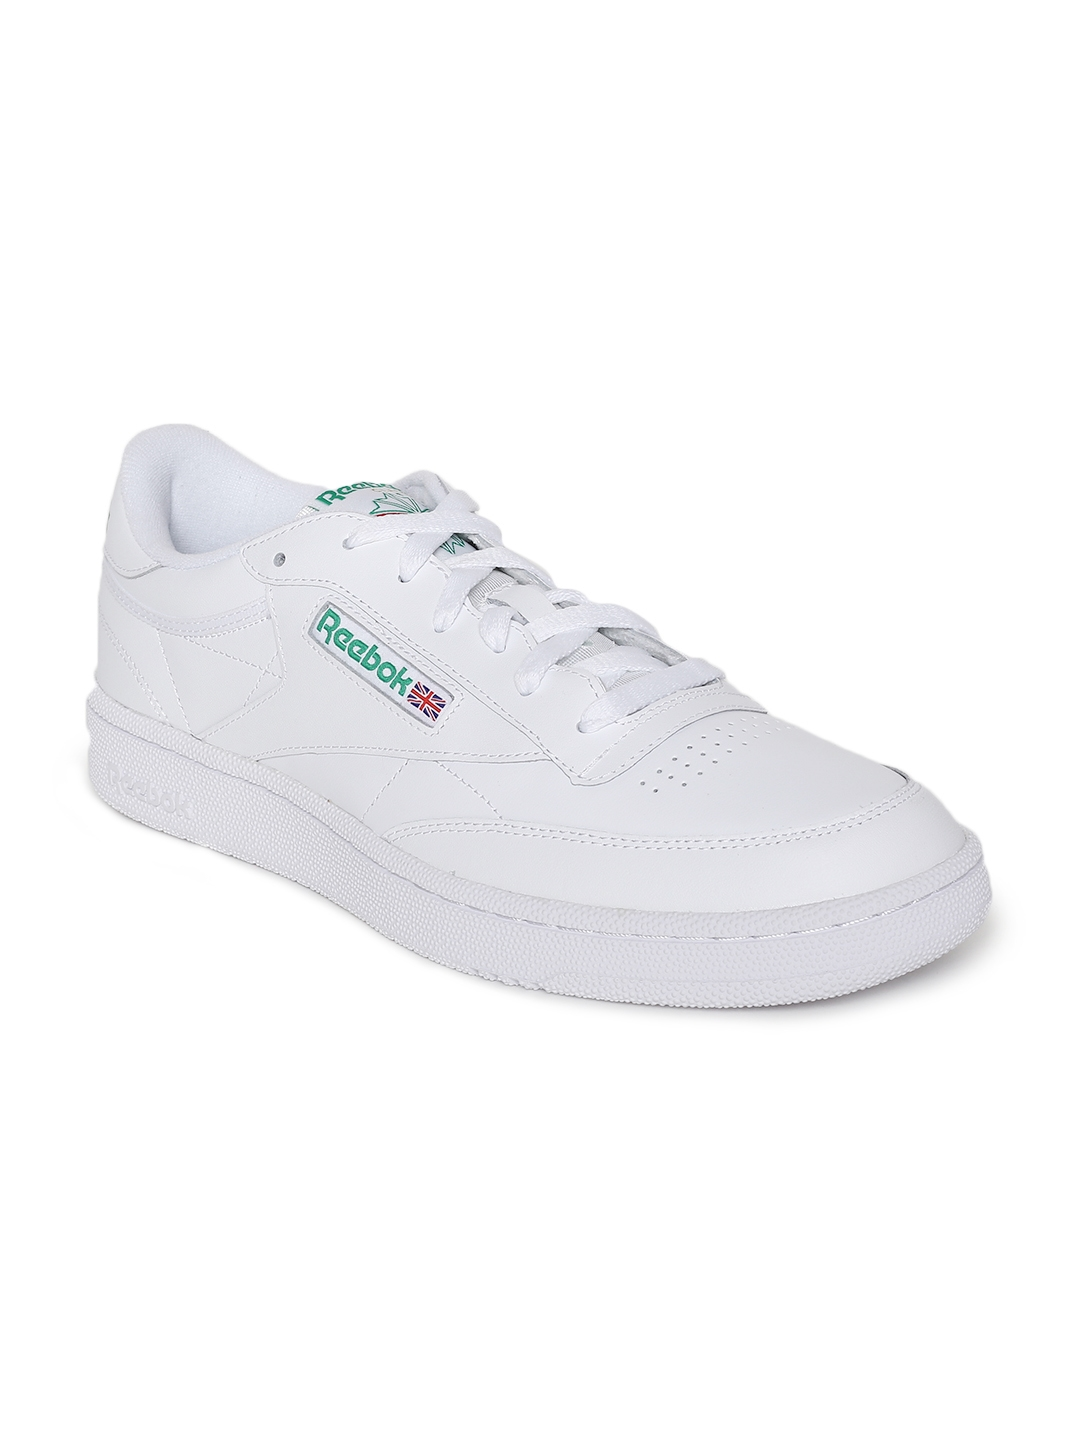 075140e21c5a3 Buy Reebok Classics Men CLUB C 85 White Sneakers - Casual Shoes for ...